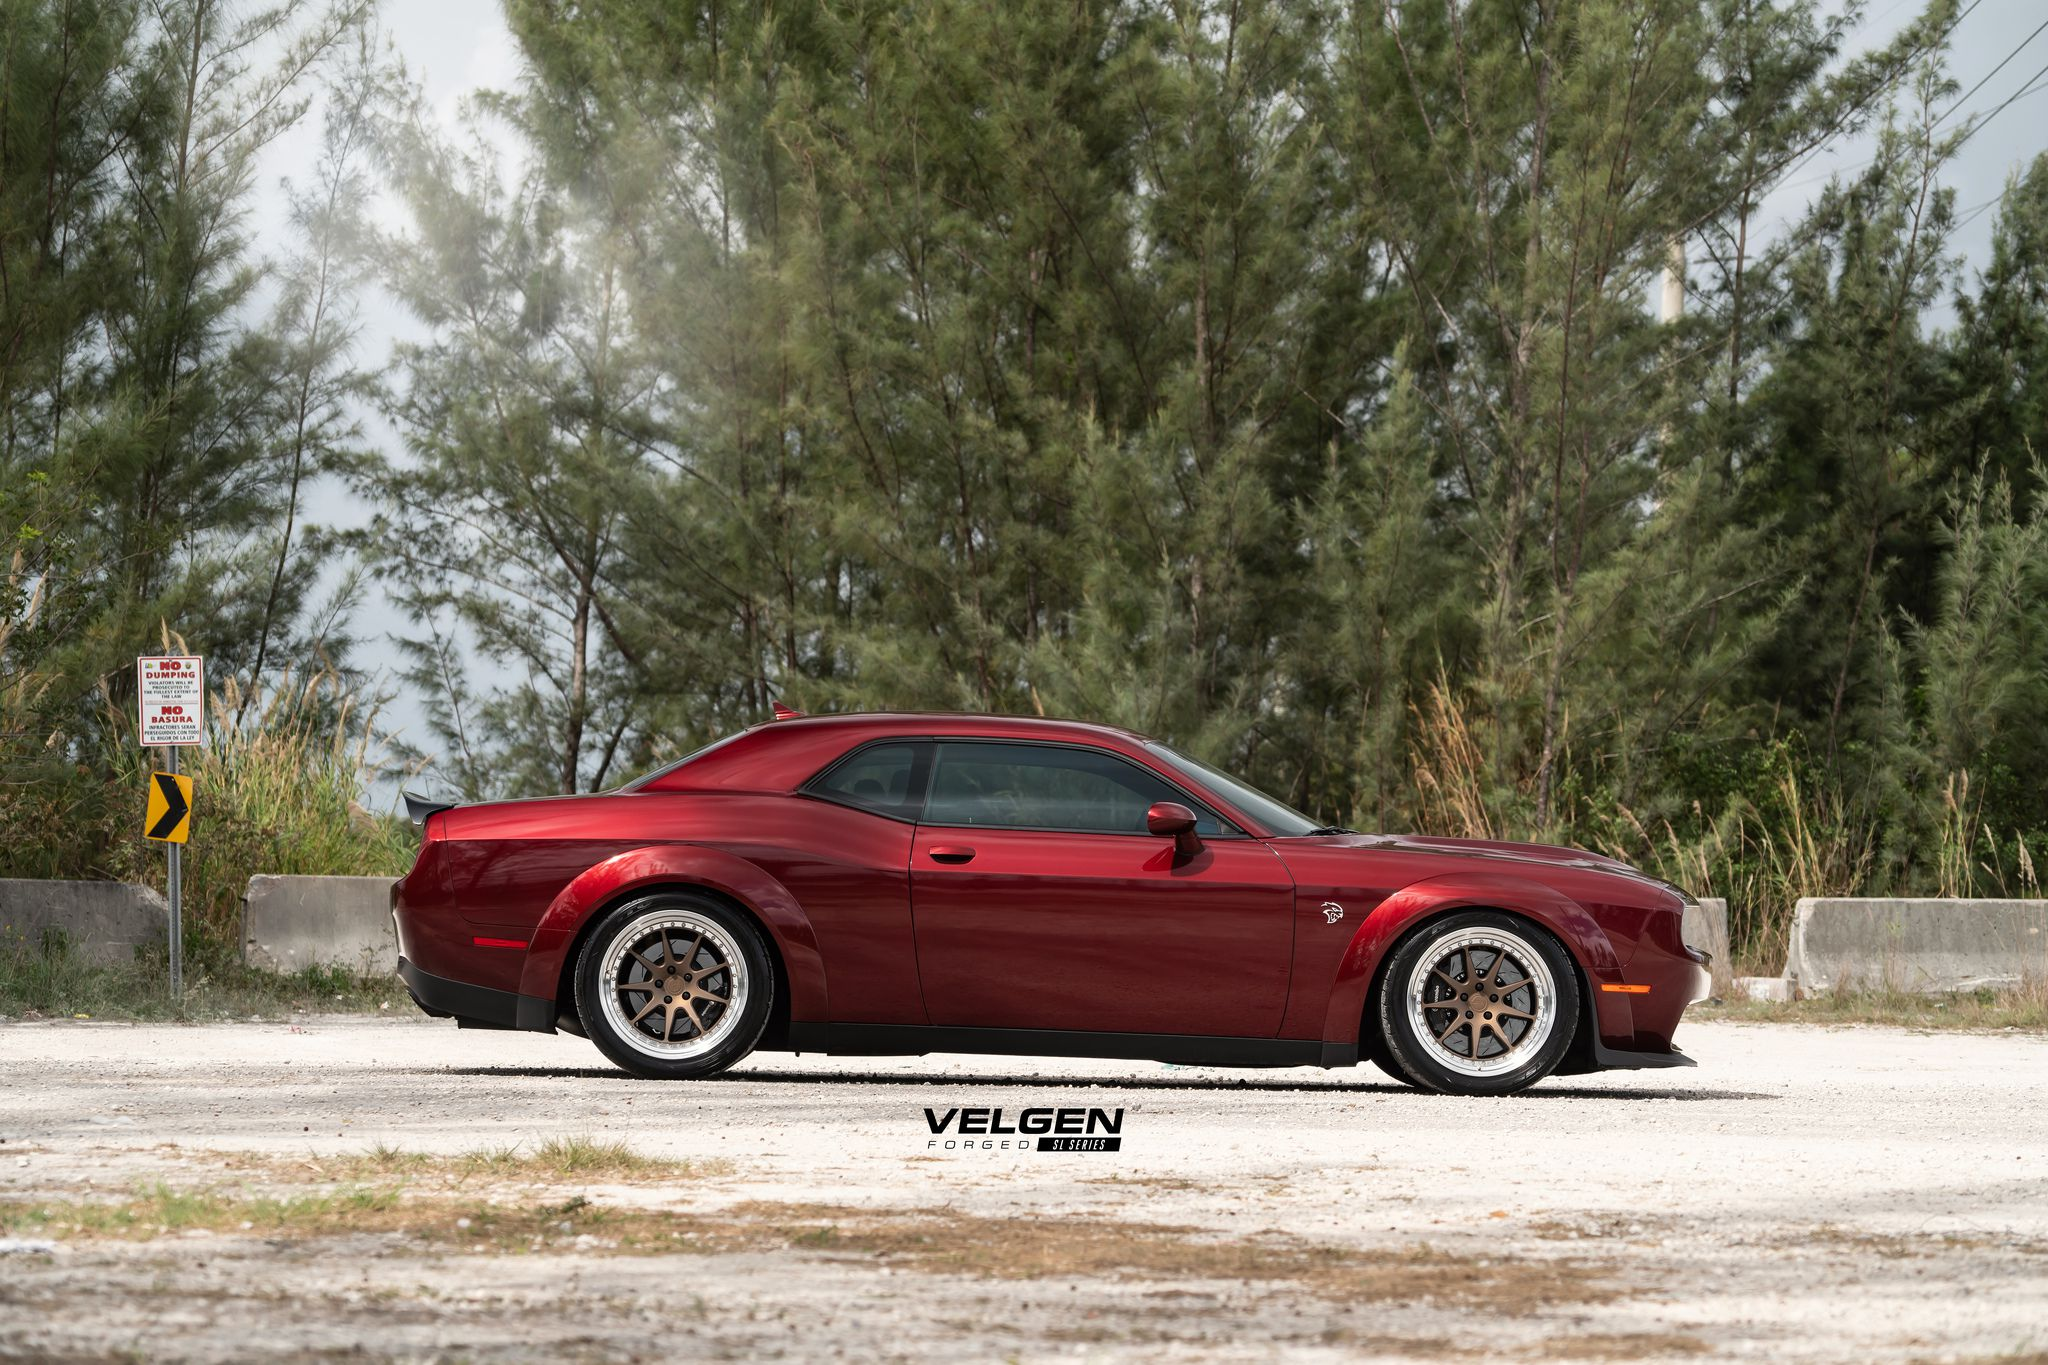 Hellcat Dodge Challenger in dark red colour